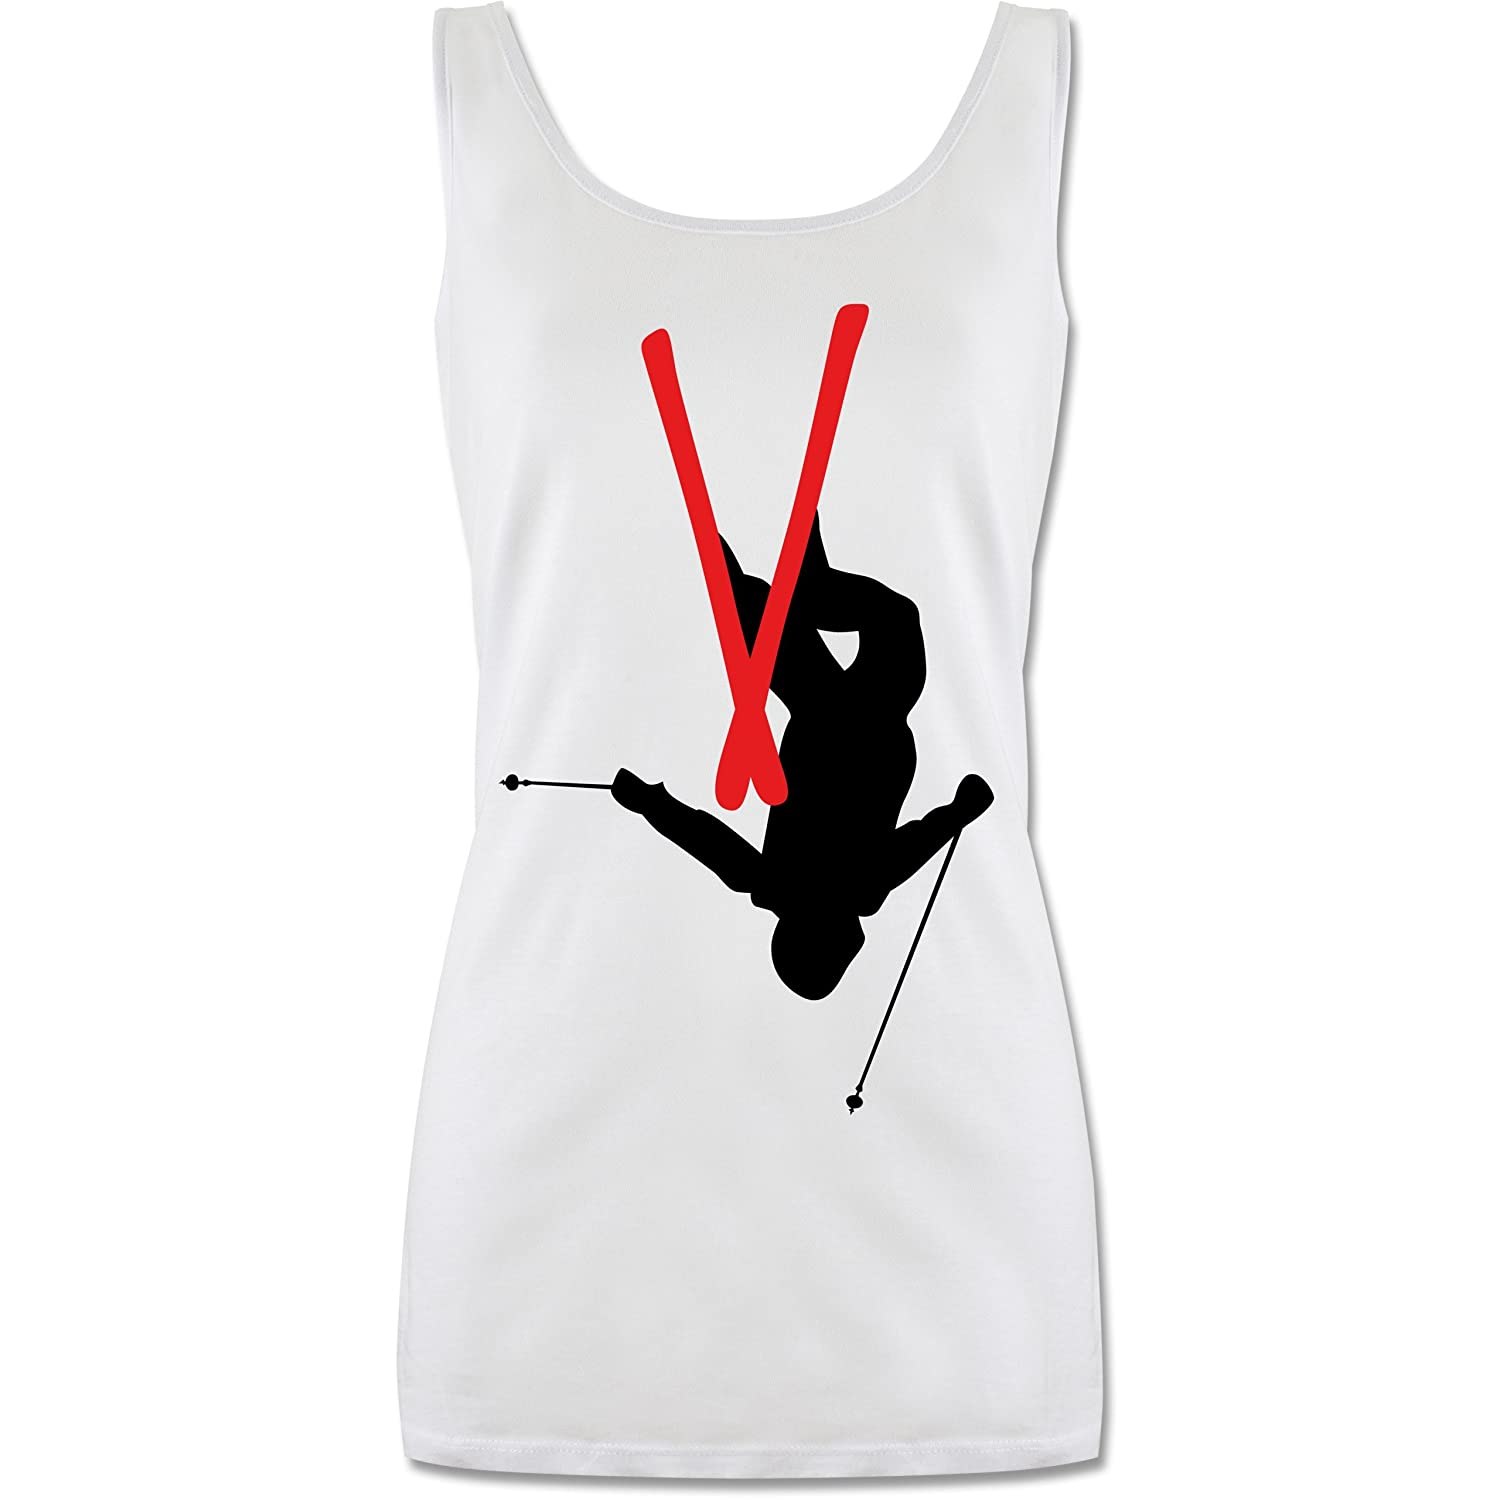 Wintersport - Freestyle Skiing - Freestyle Ski Tricks - lang-geschnittenes Tanktop für Damen